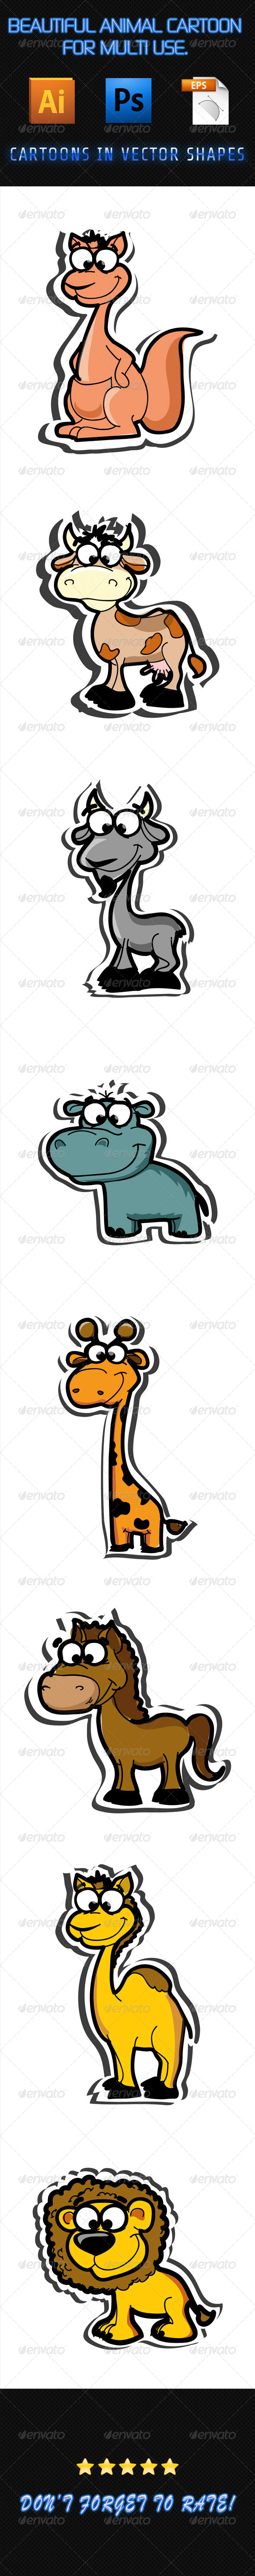 GraphicRiver Animal Cartoons 01 7571491